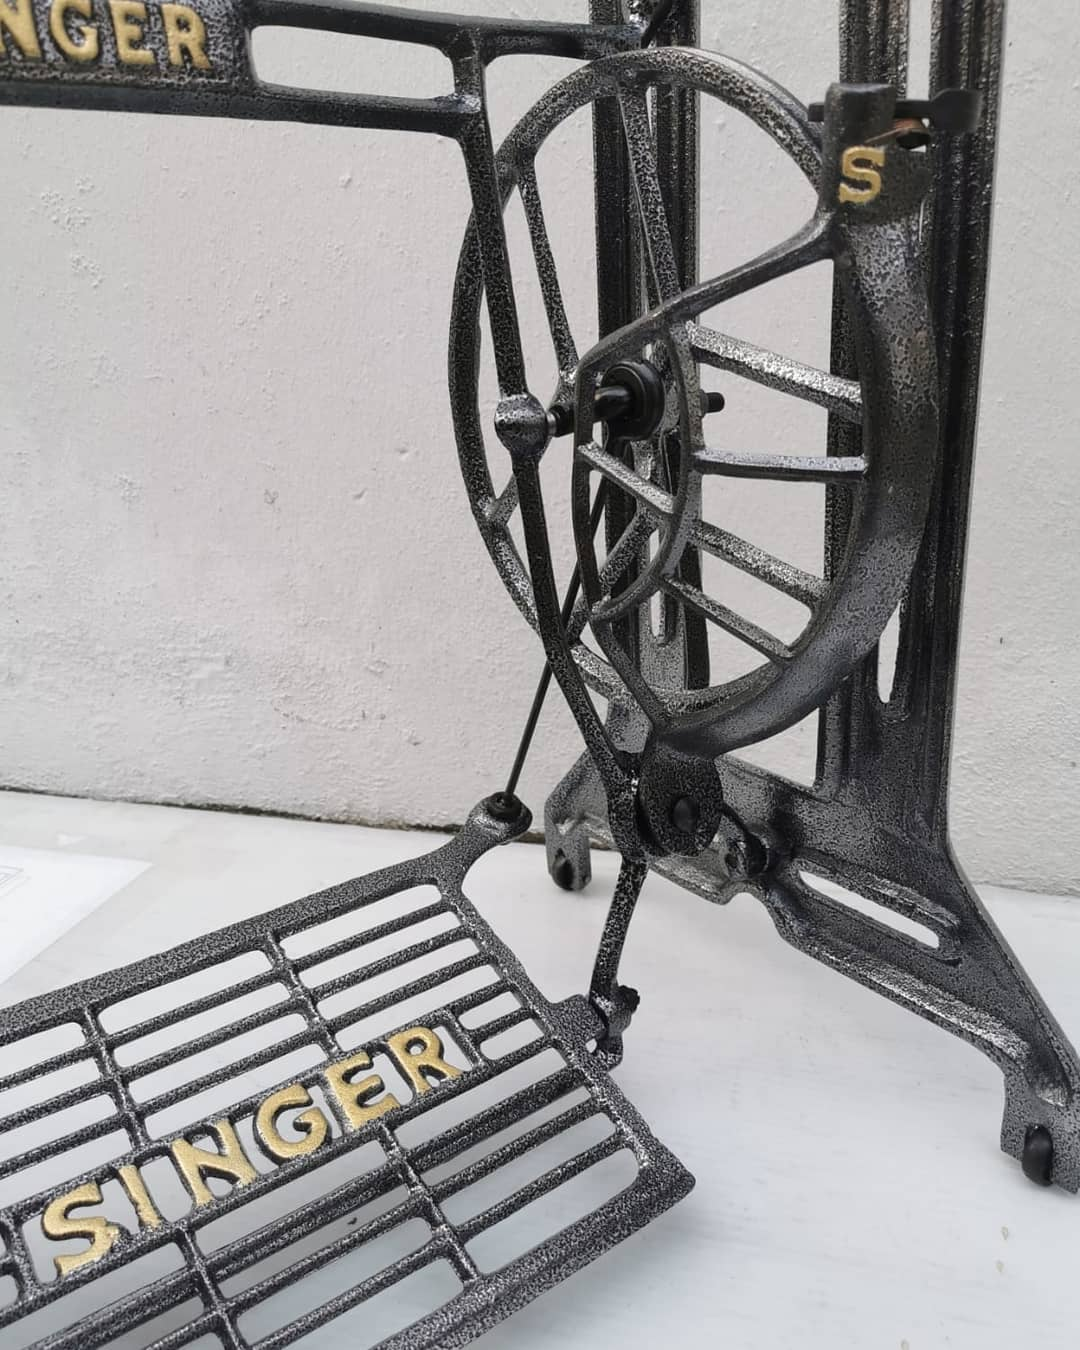 Metal Stand, Treadle type - Singer Original at www.Sewing.sg